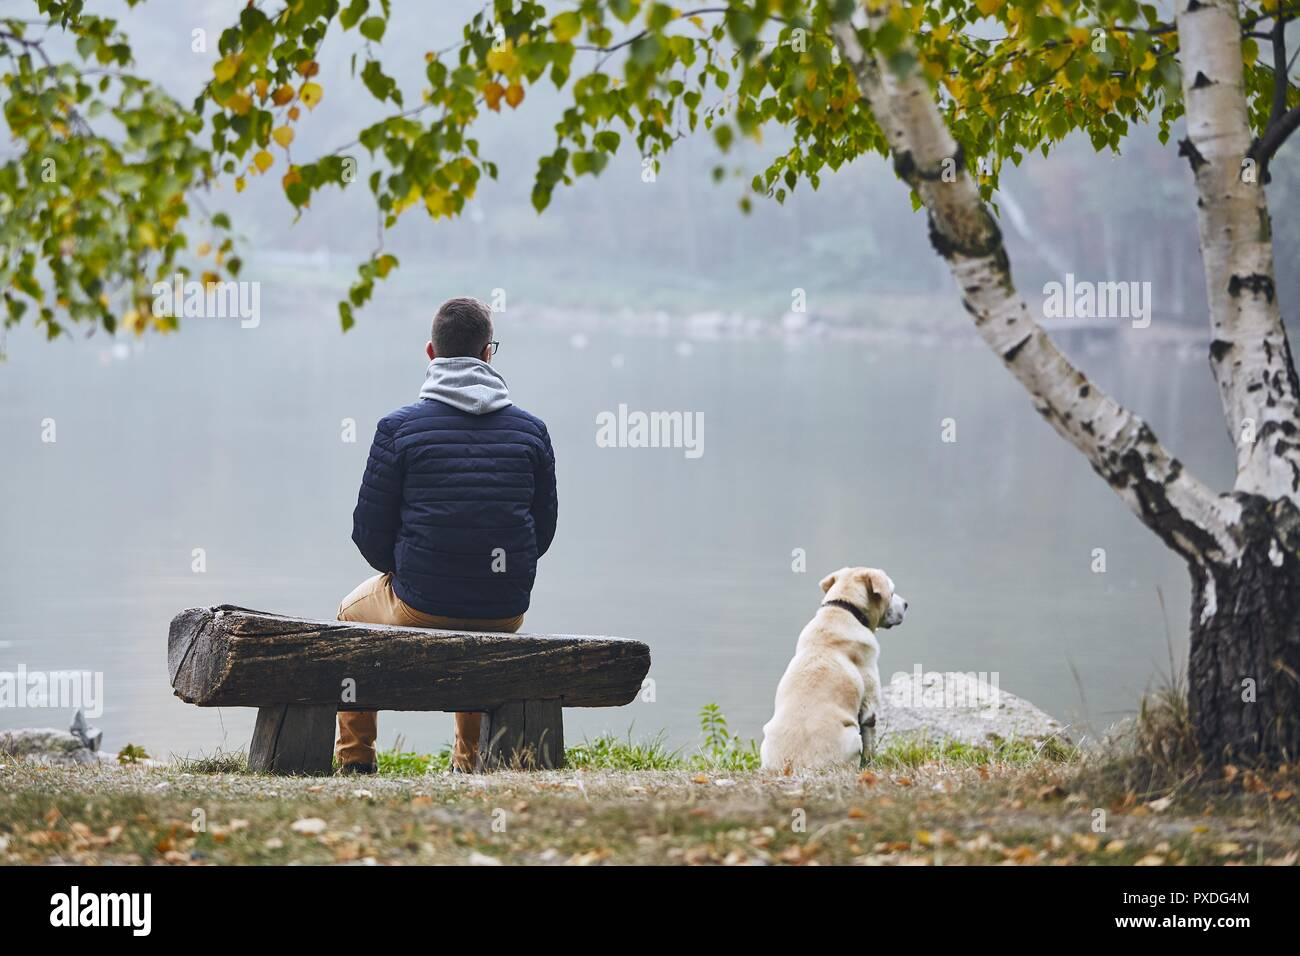 Pensive man with dog is contemplation on wooden bench near pond in autumn nature. - Stock Image